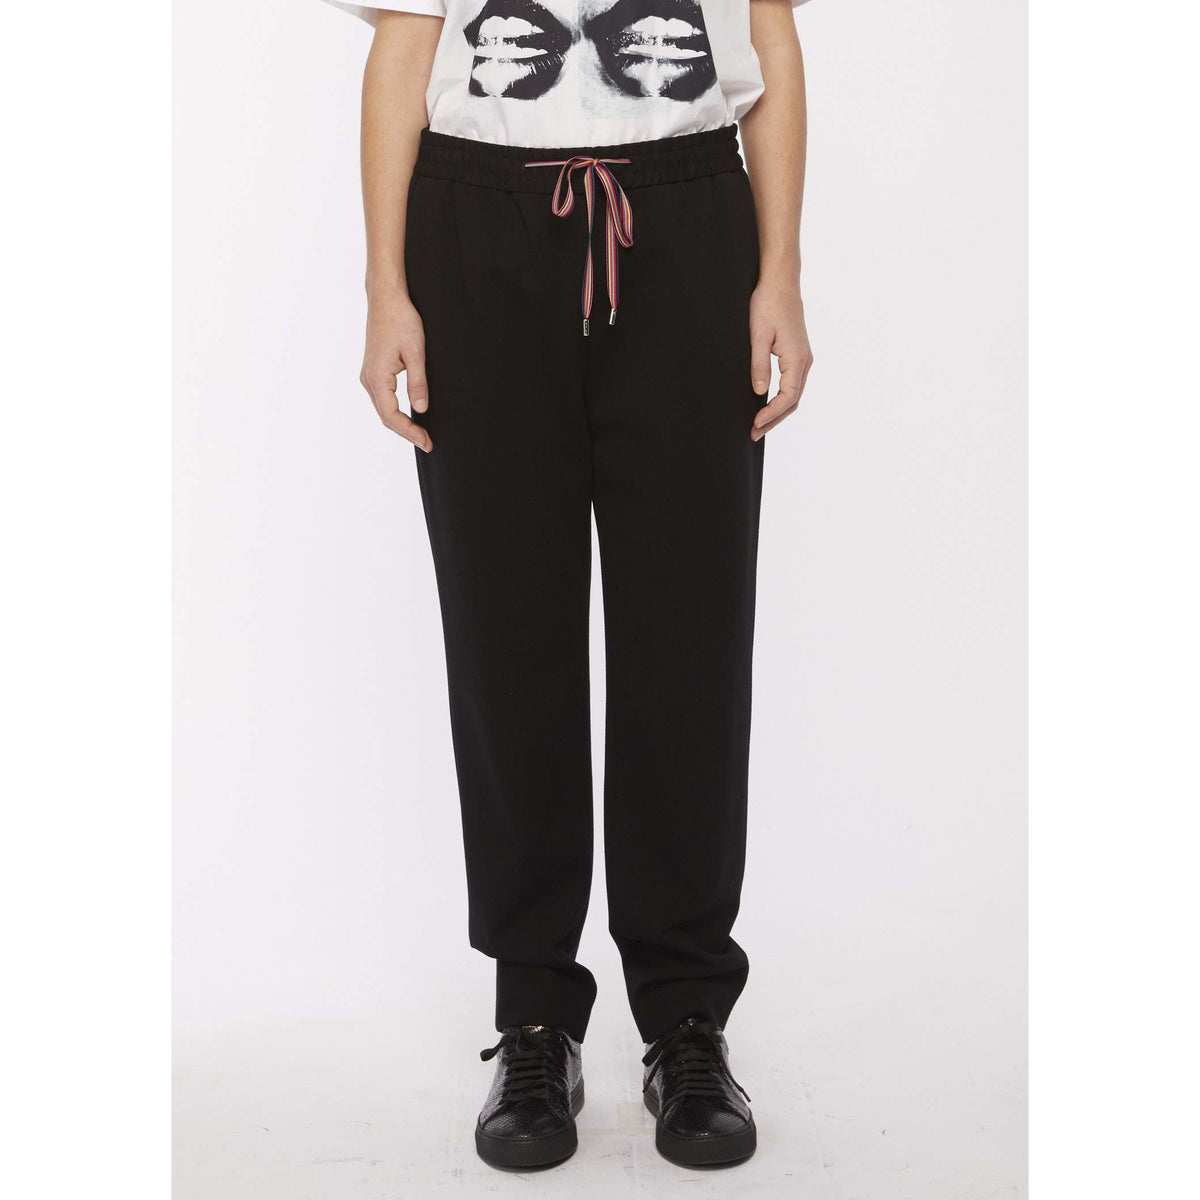 PS PAUL SMITH TAILORED SWEAT PANTS BLACK